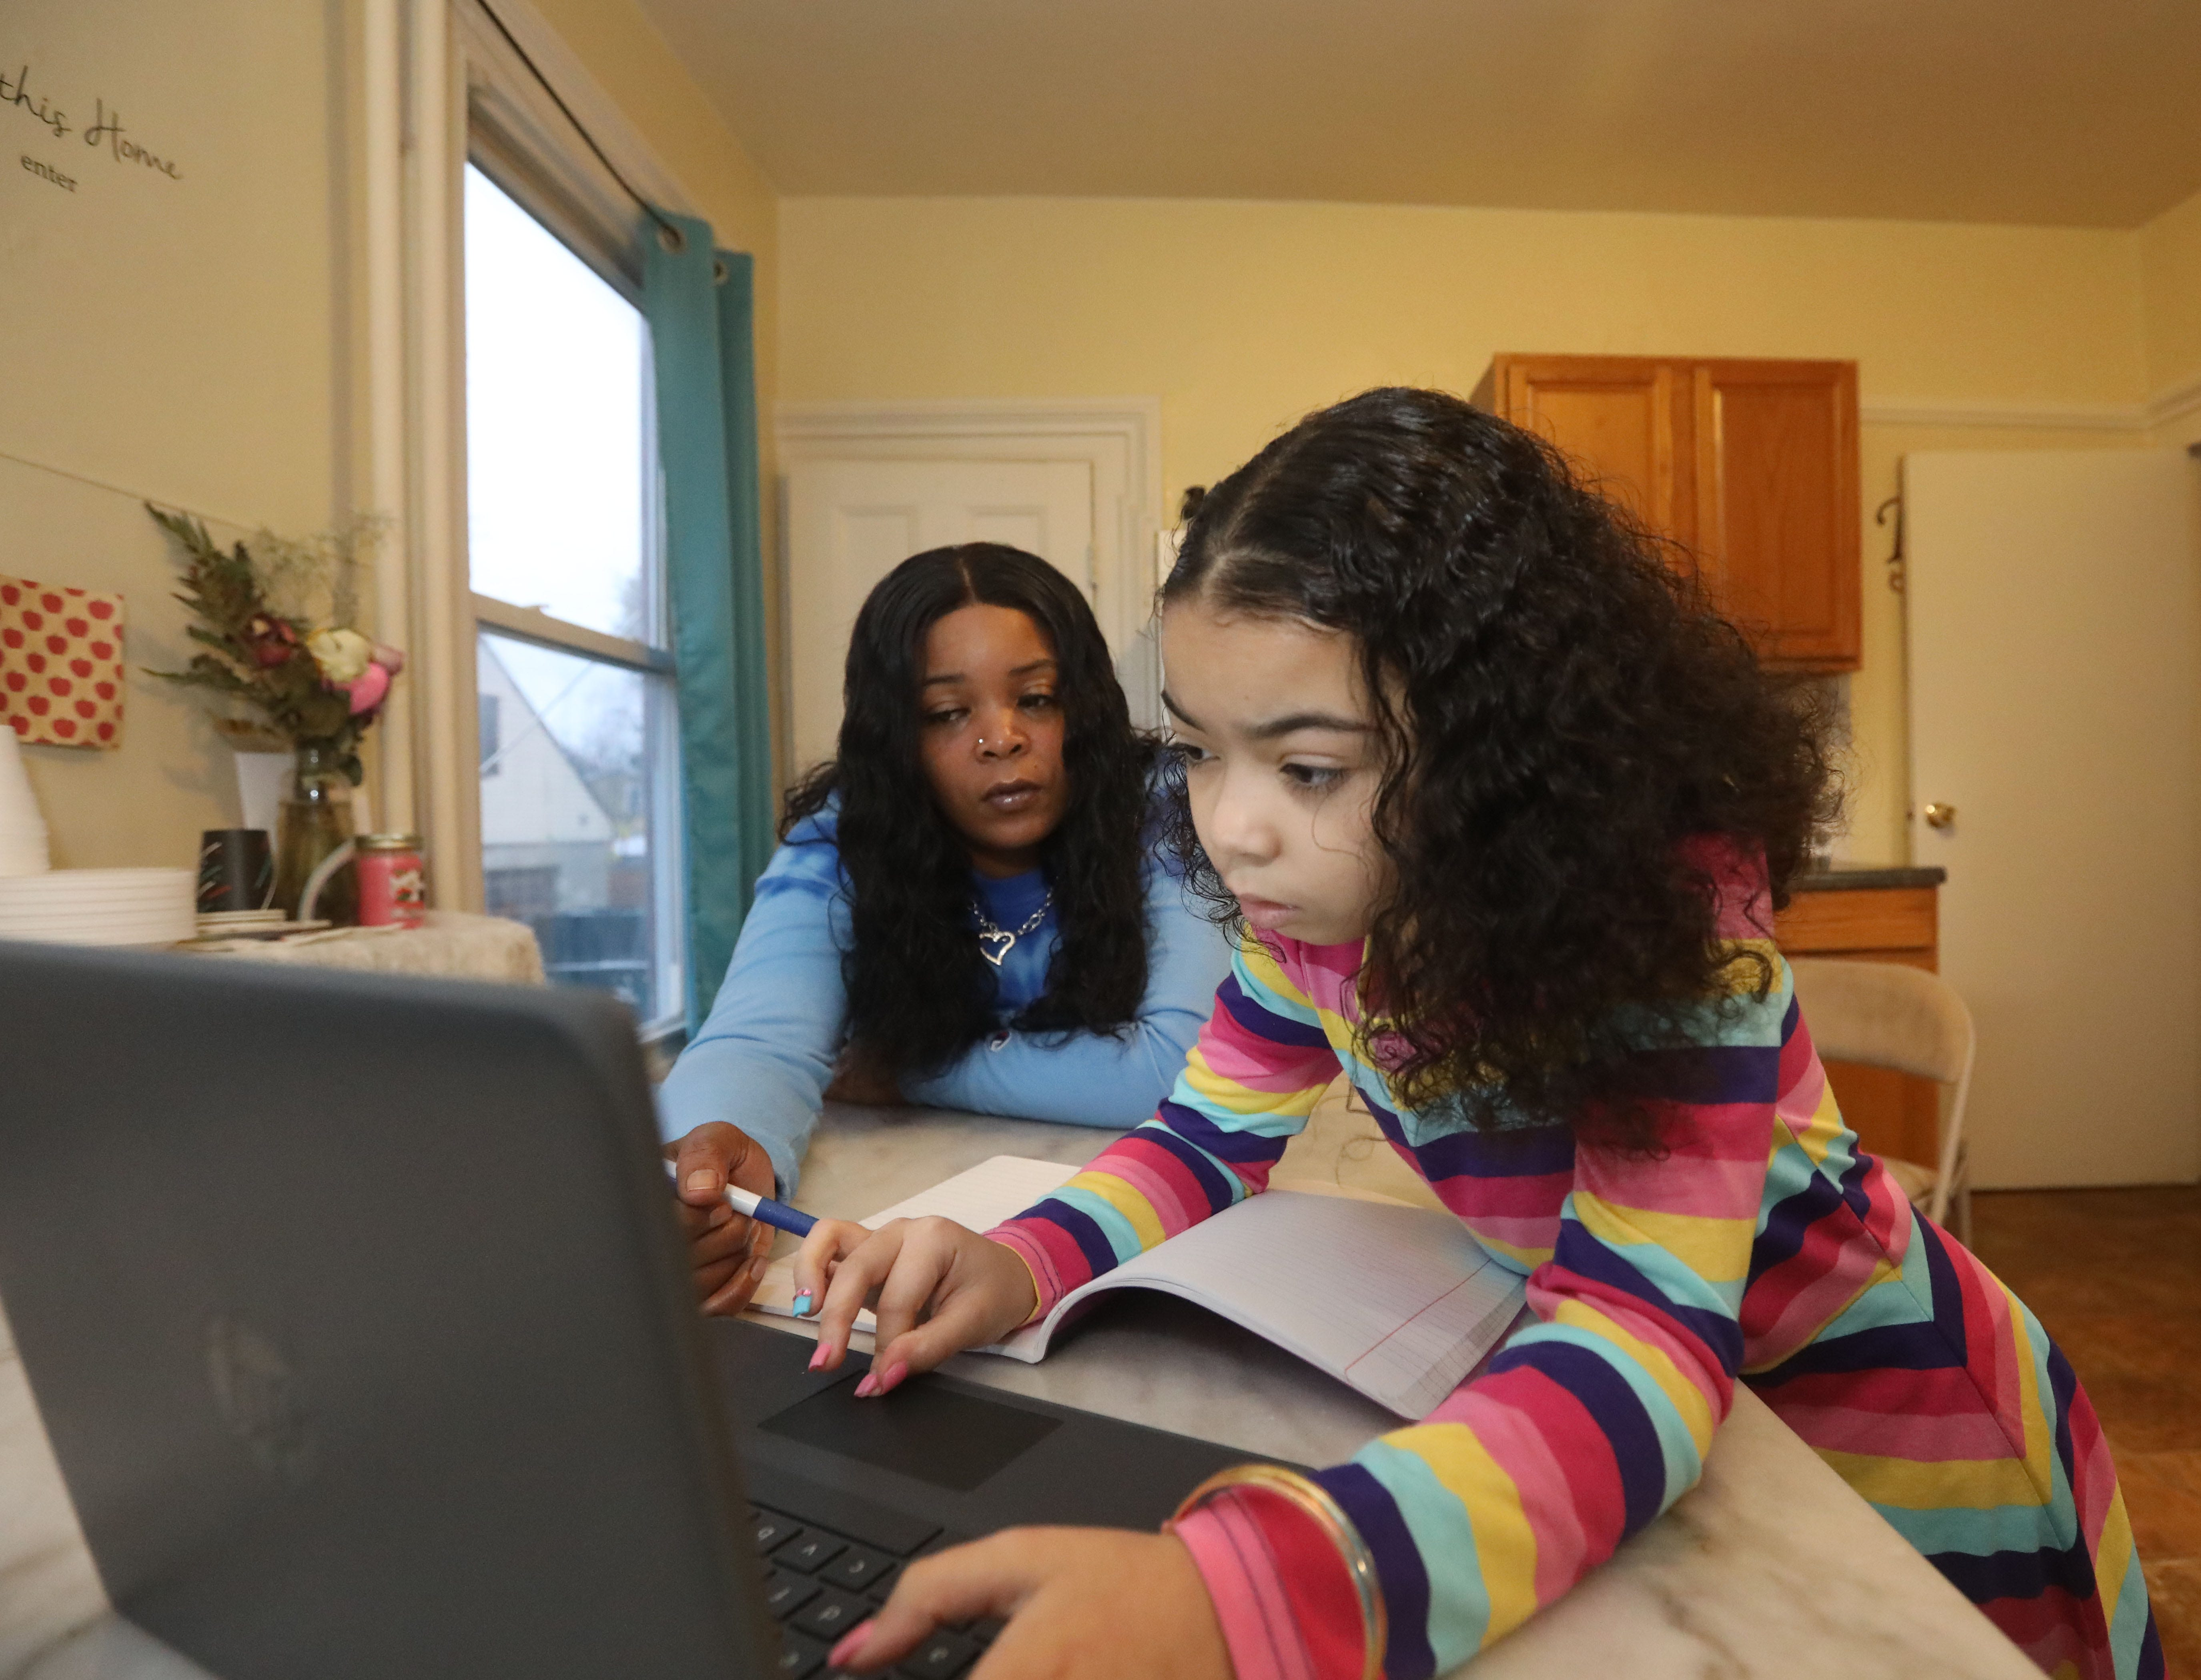 The pandemic further complicated difficult situations faced by New York families. Kenda Smith, shown here helping her daughter, Diamond Yeno with a math assignment in October, recently regained custody of her and is navigating their relationship along with financial hardship.